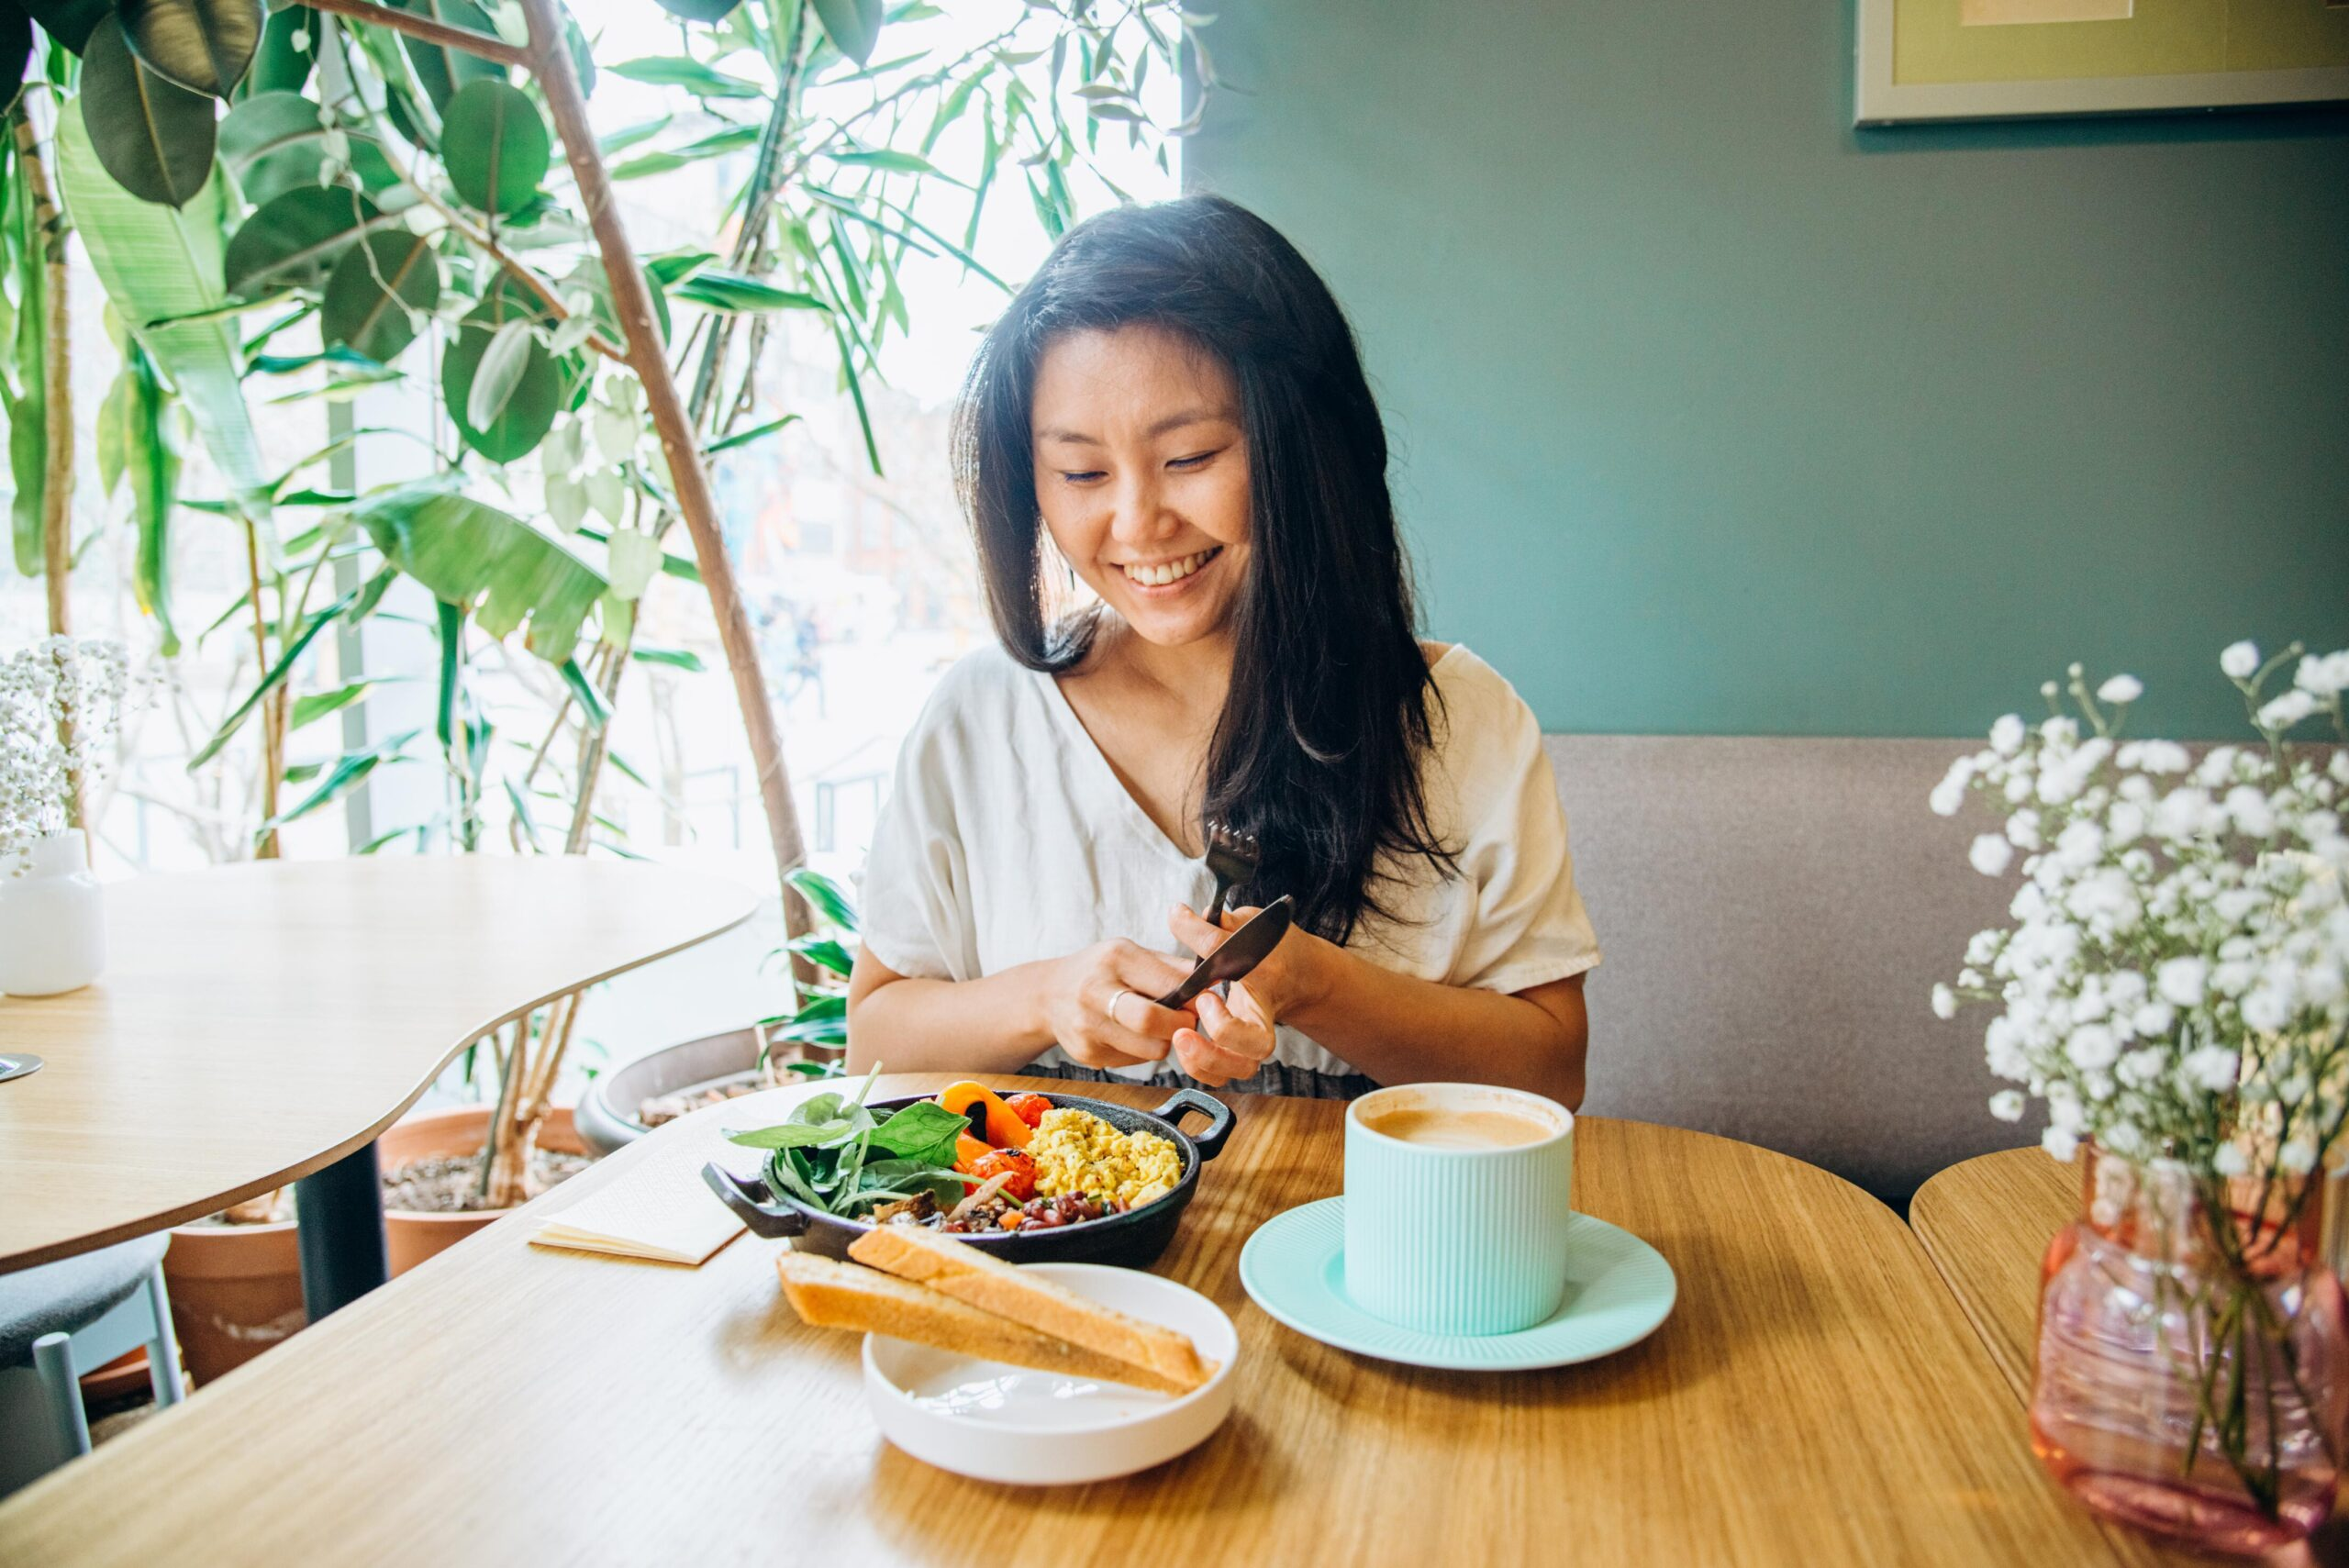 <i>Elena Perova/iStockphoto/Getty Images</i><br/>Enjoying a meal without distractions is a crucial part of mindful eating.